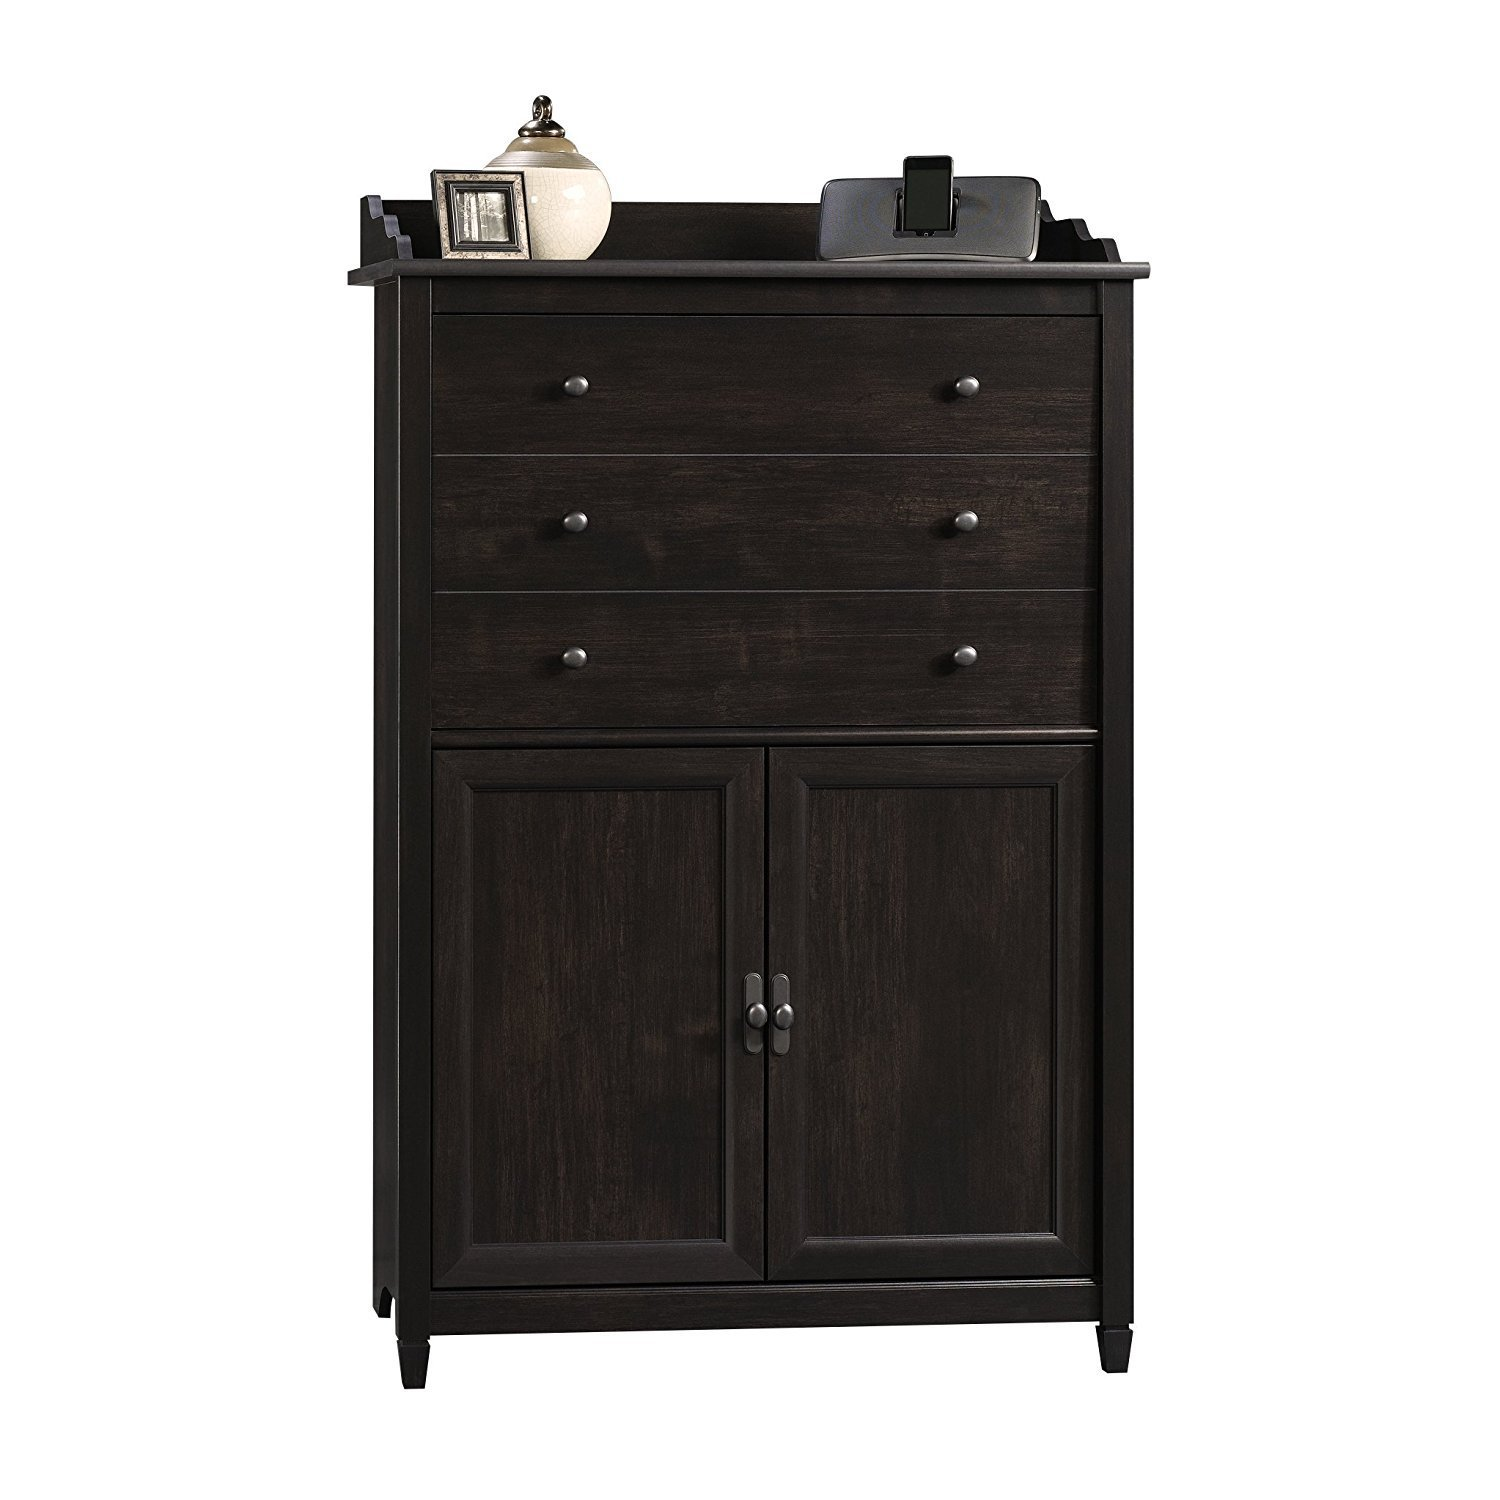 armoire computer desk home furniture design. Black Bedroom Furniture Sets. Home Design Ideas